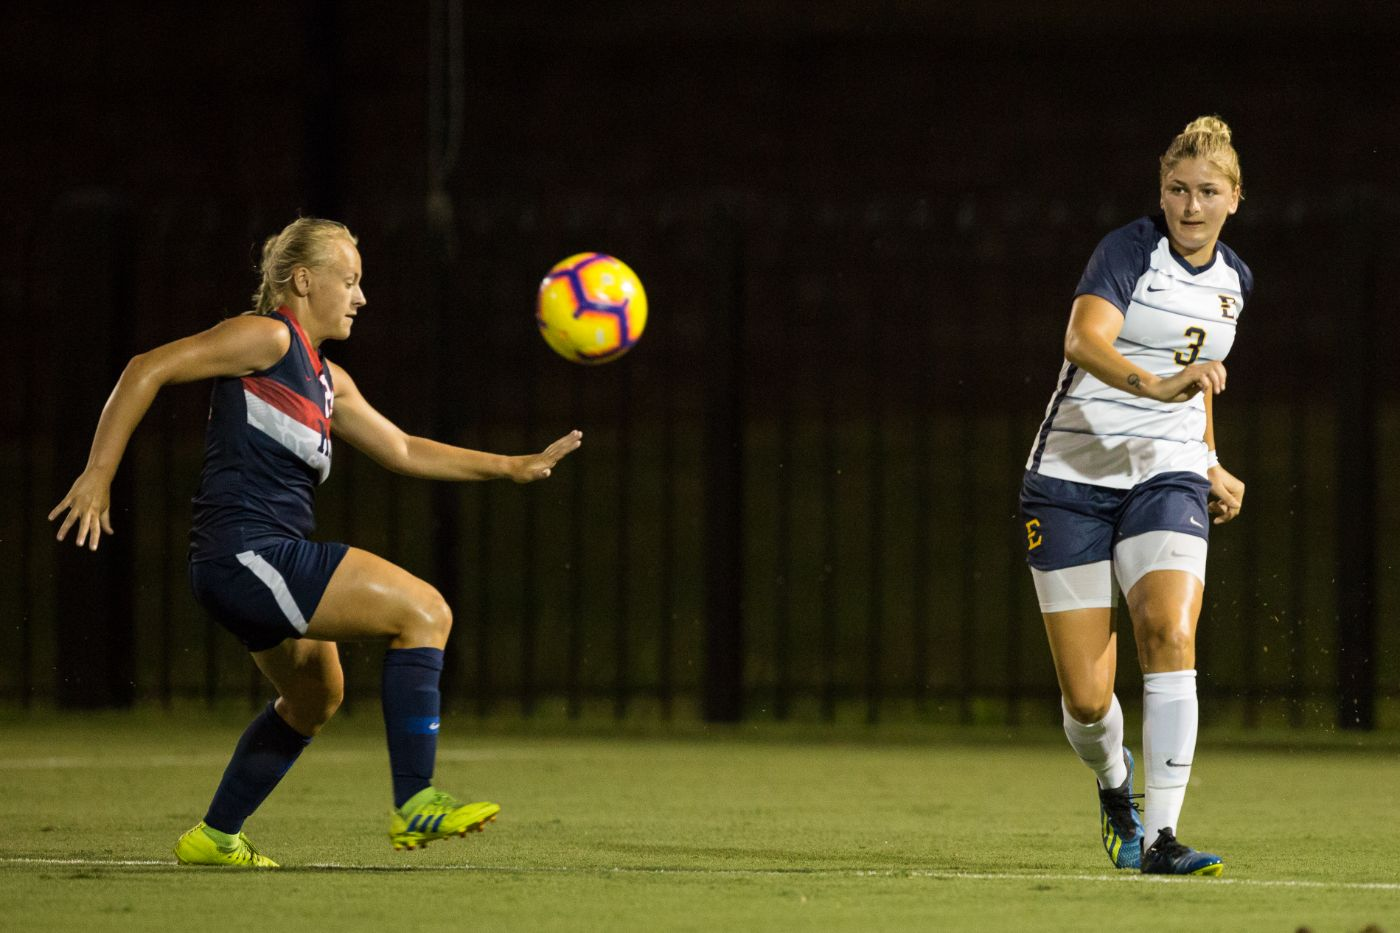 ETSU Falls to UNC Asheville in Overtime Matchup